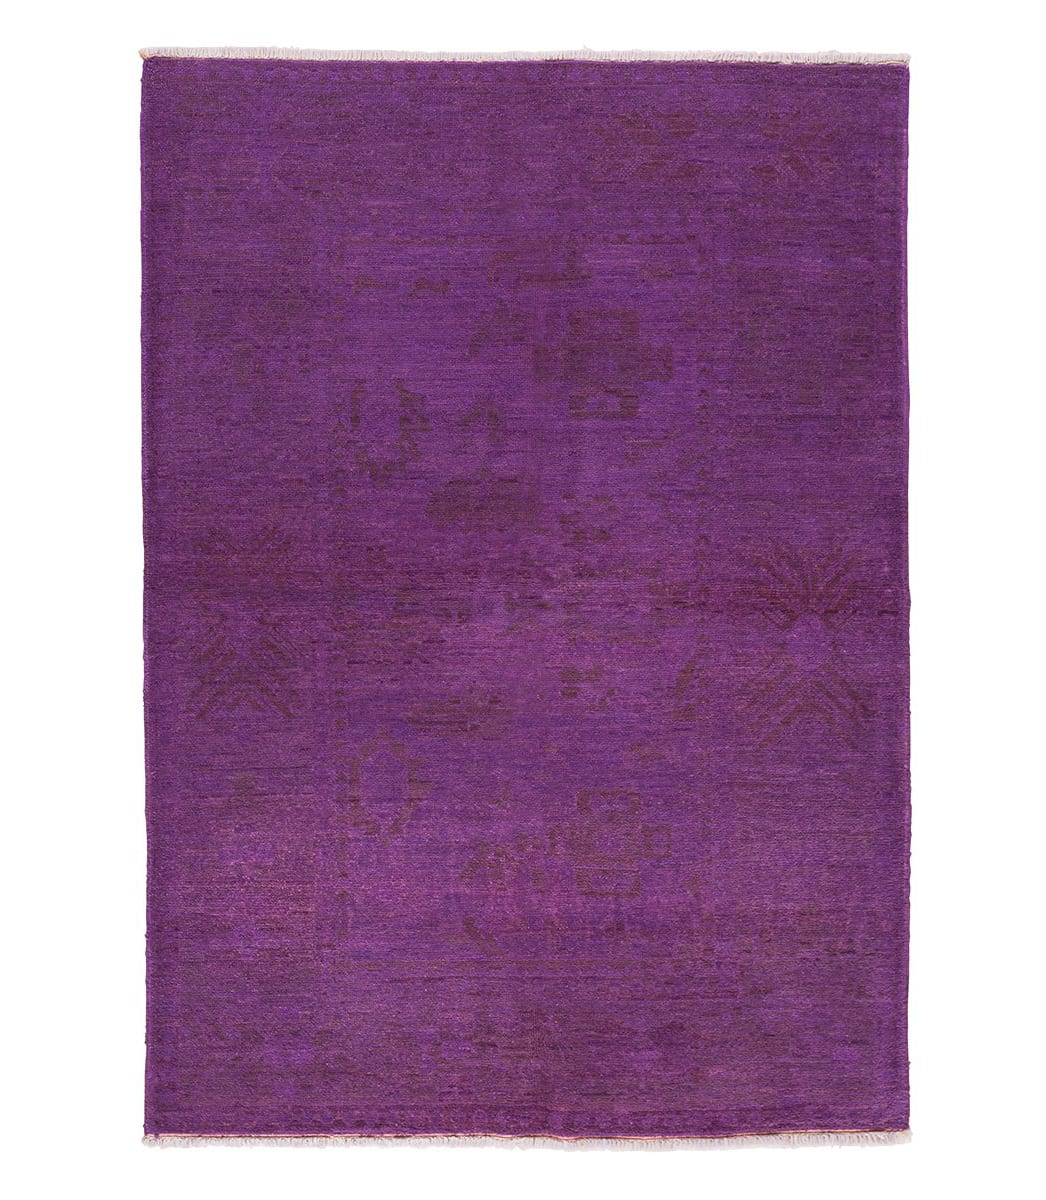 Tufenkian Knotted Gharni Purple Overdyed Sheared